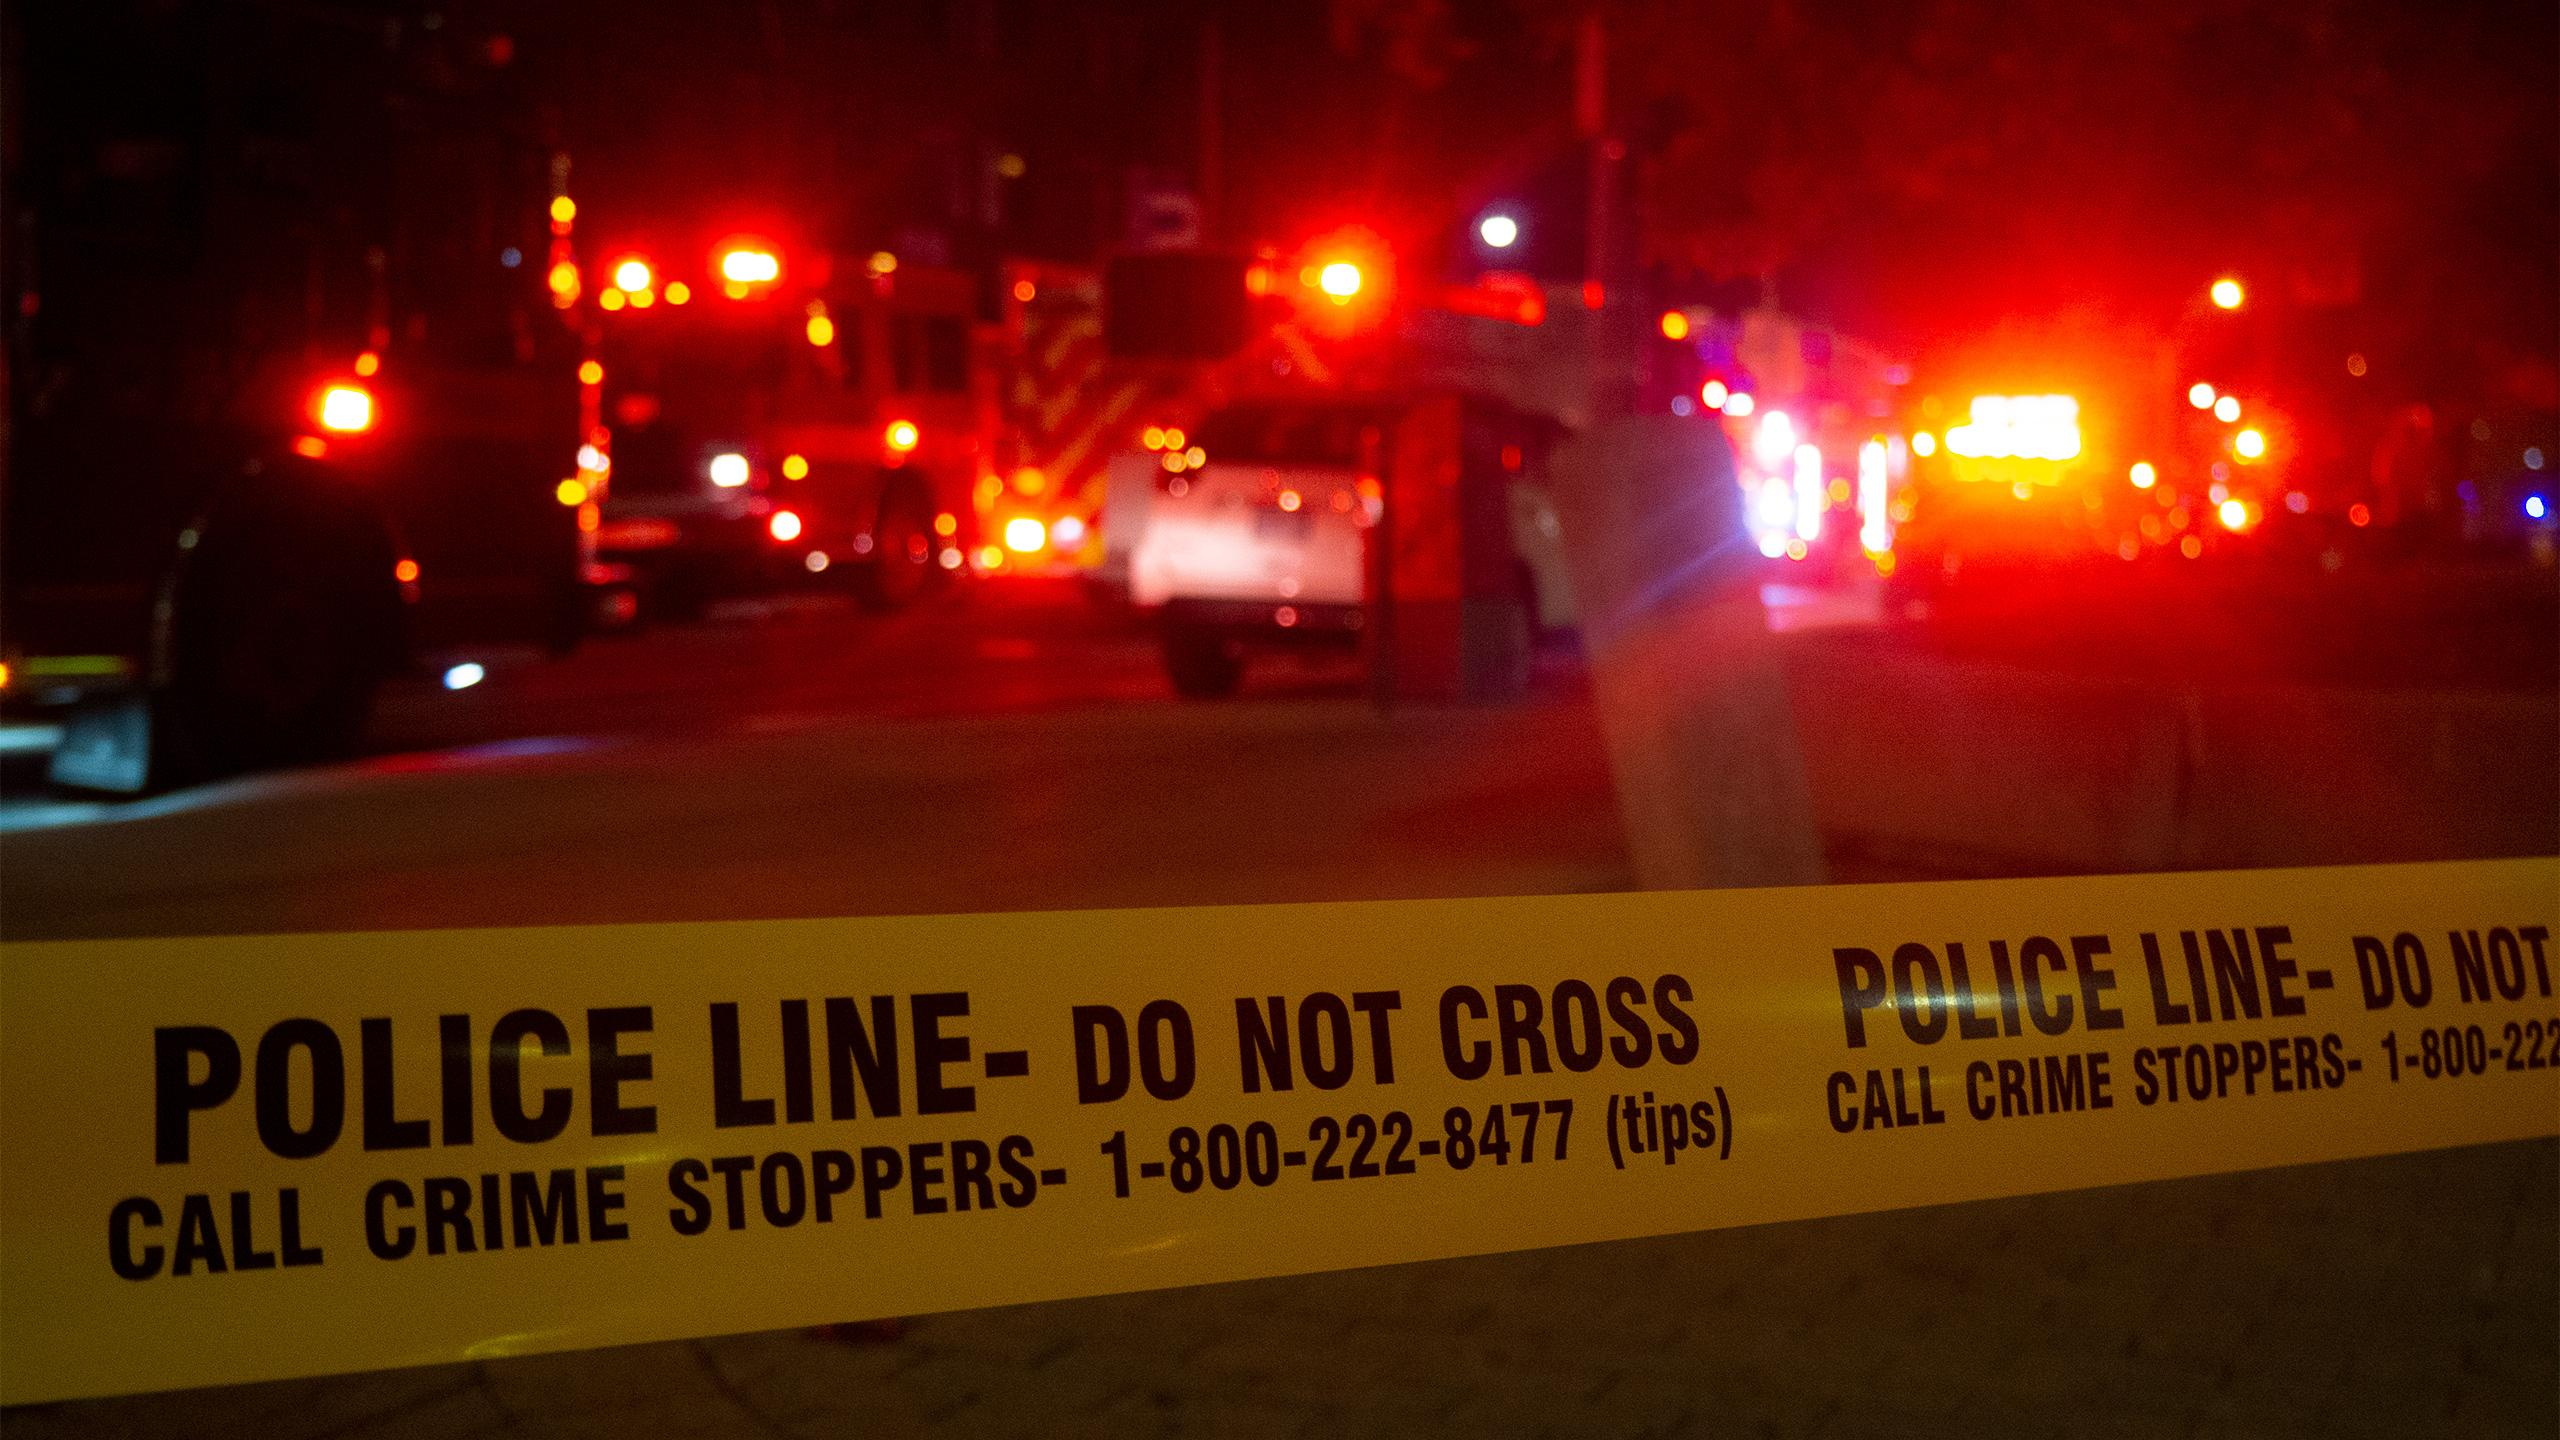 Police tape in front of a street with several firetrucks and emergency response vehicles.